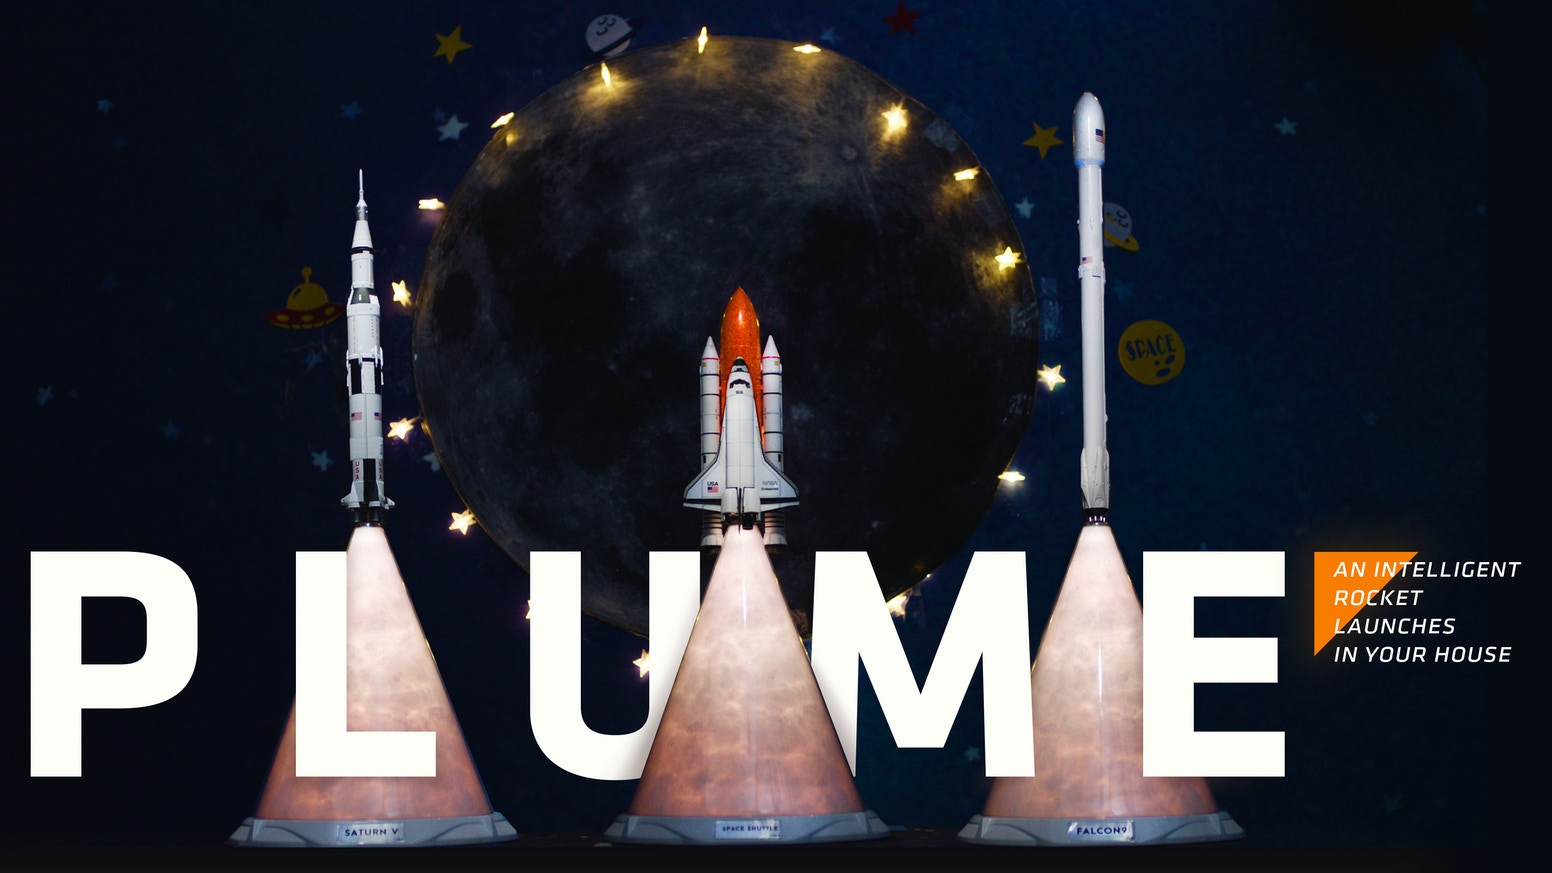 PLUME is a smart, multifunctional rocket launch vehicle designed to mimic a rocket launch in both appearance and entertainment.